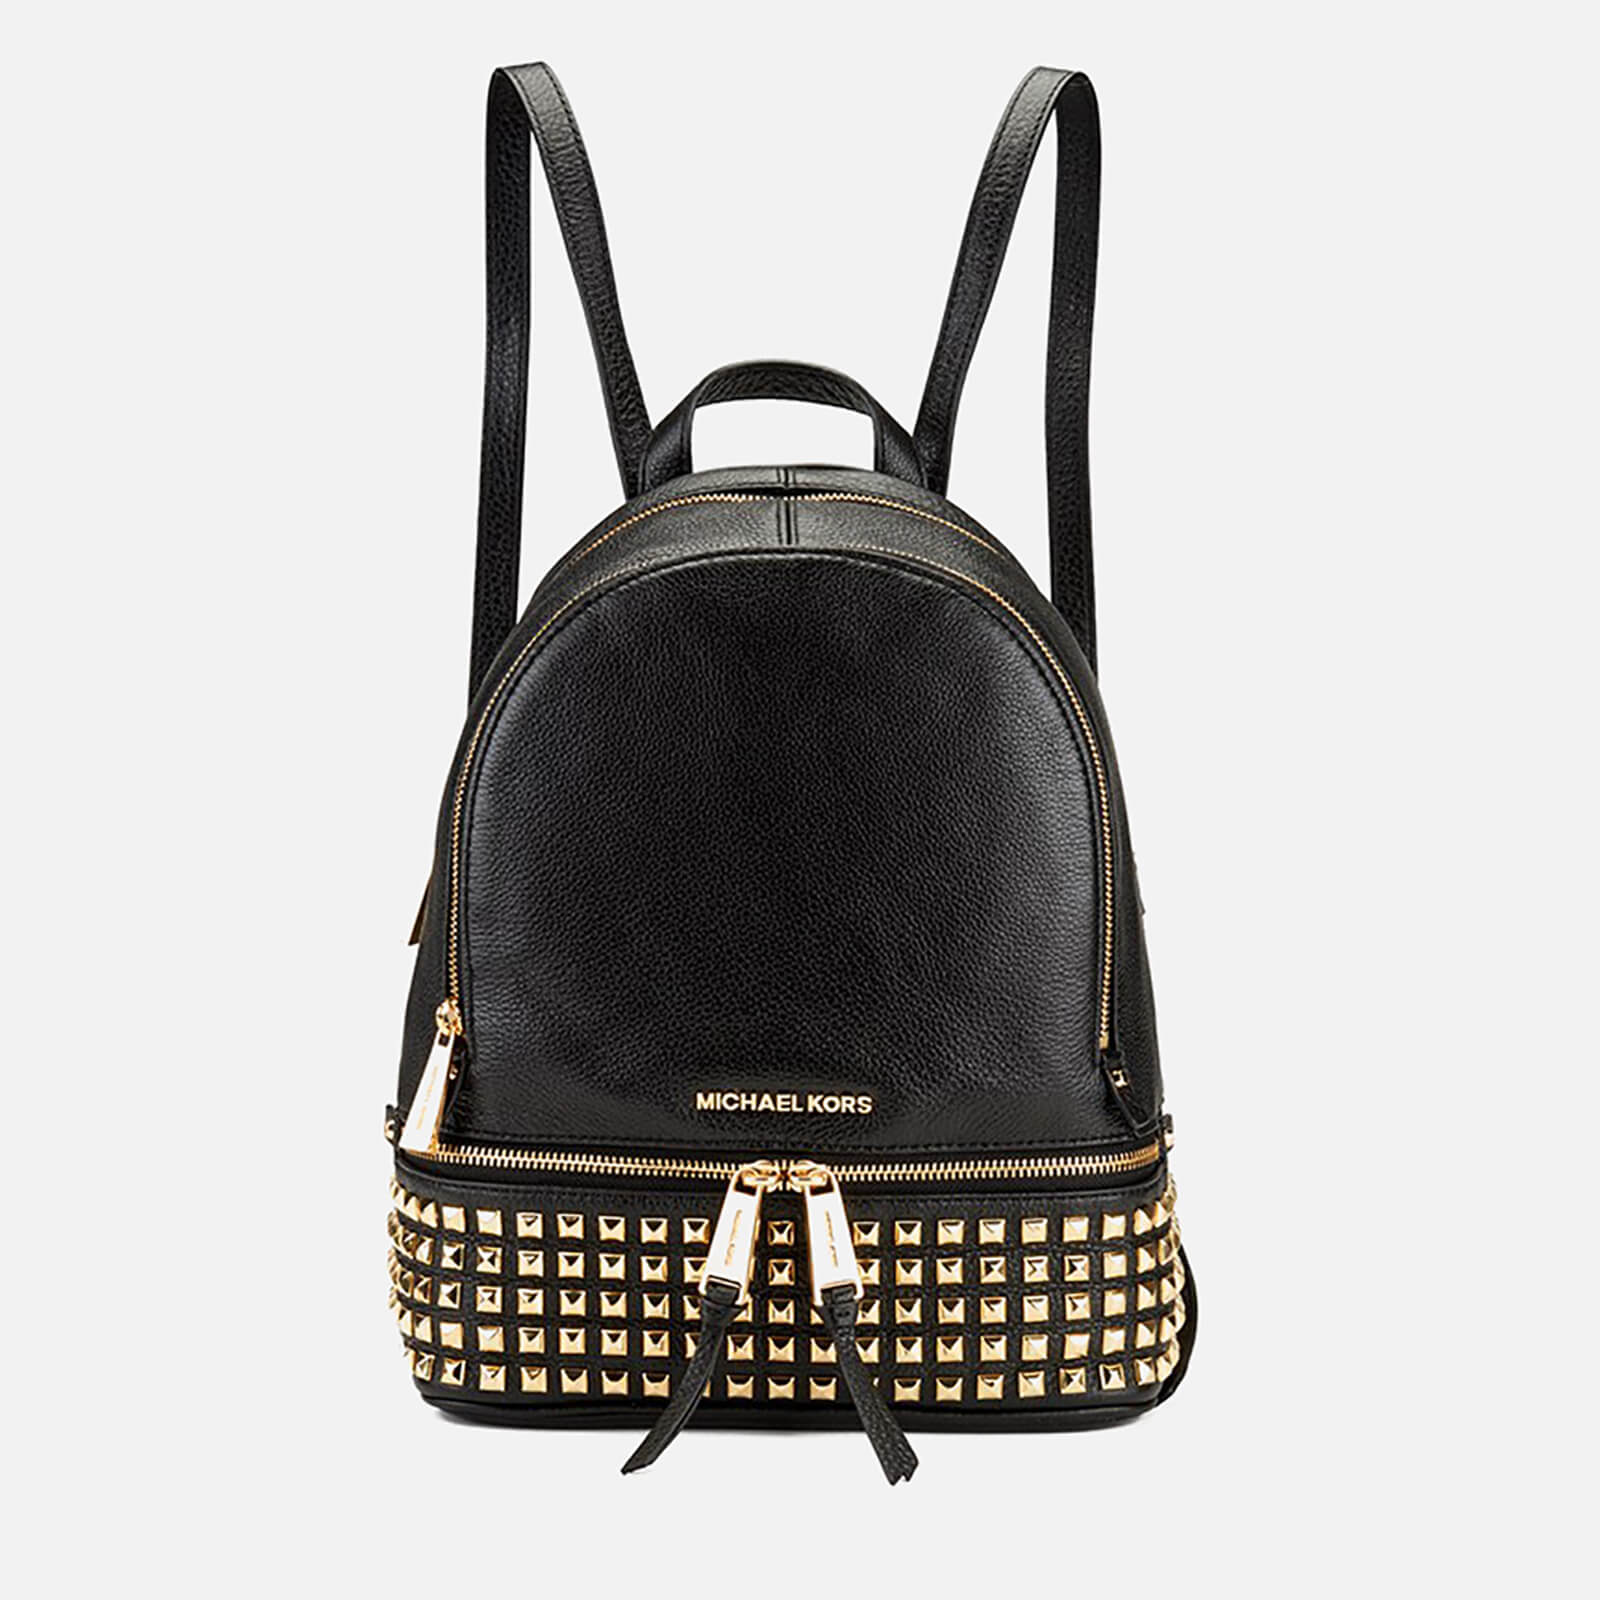 33c3e5dd19f9 MICHAEL MICHAEL KORS Women s Rhea Zip Studded Backpack - Black - Free UK  Delivery over £50